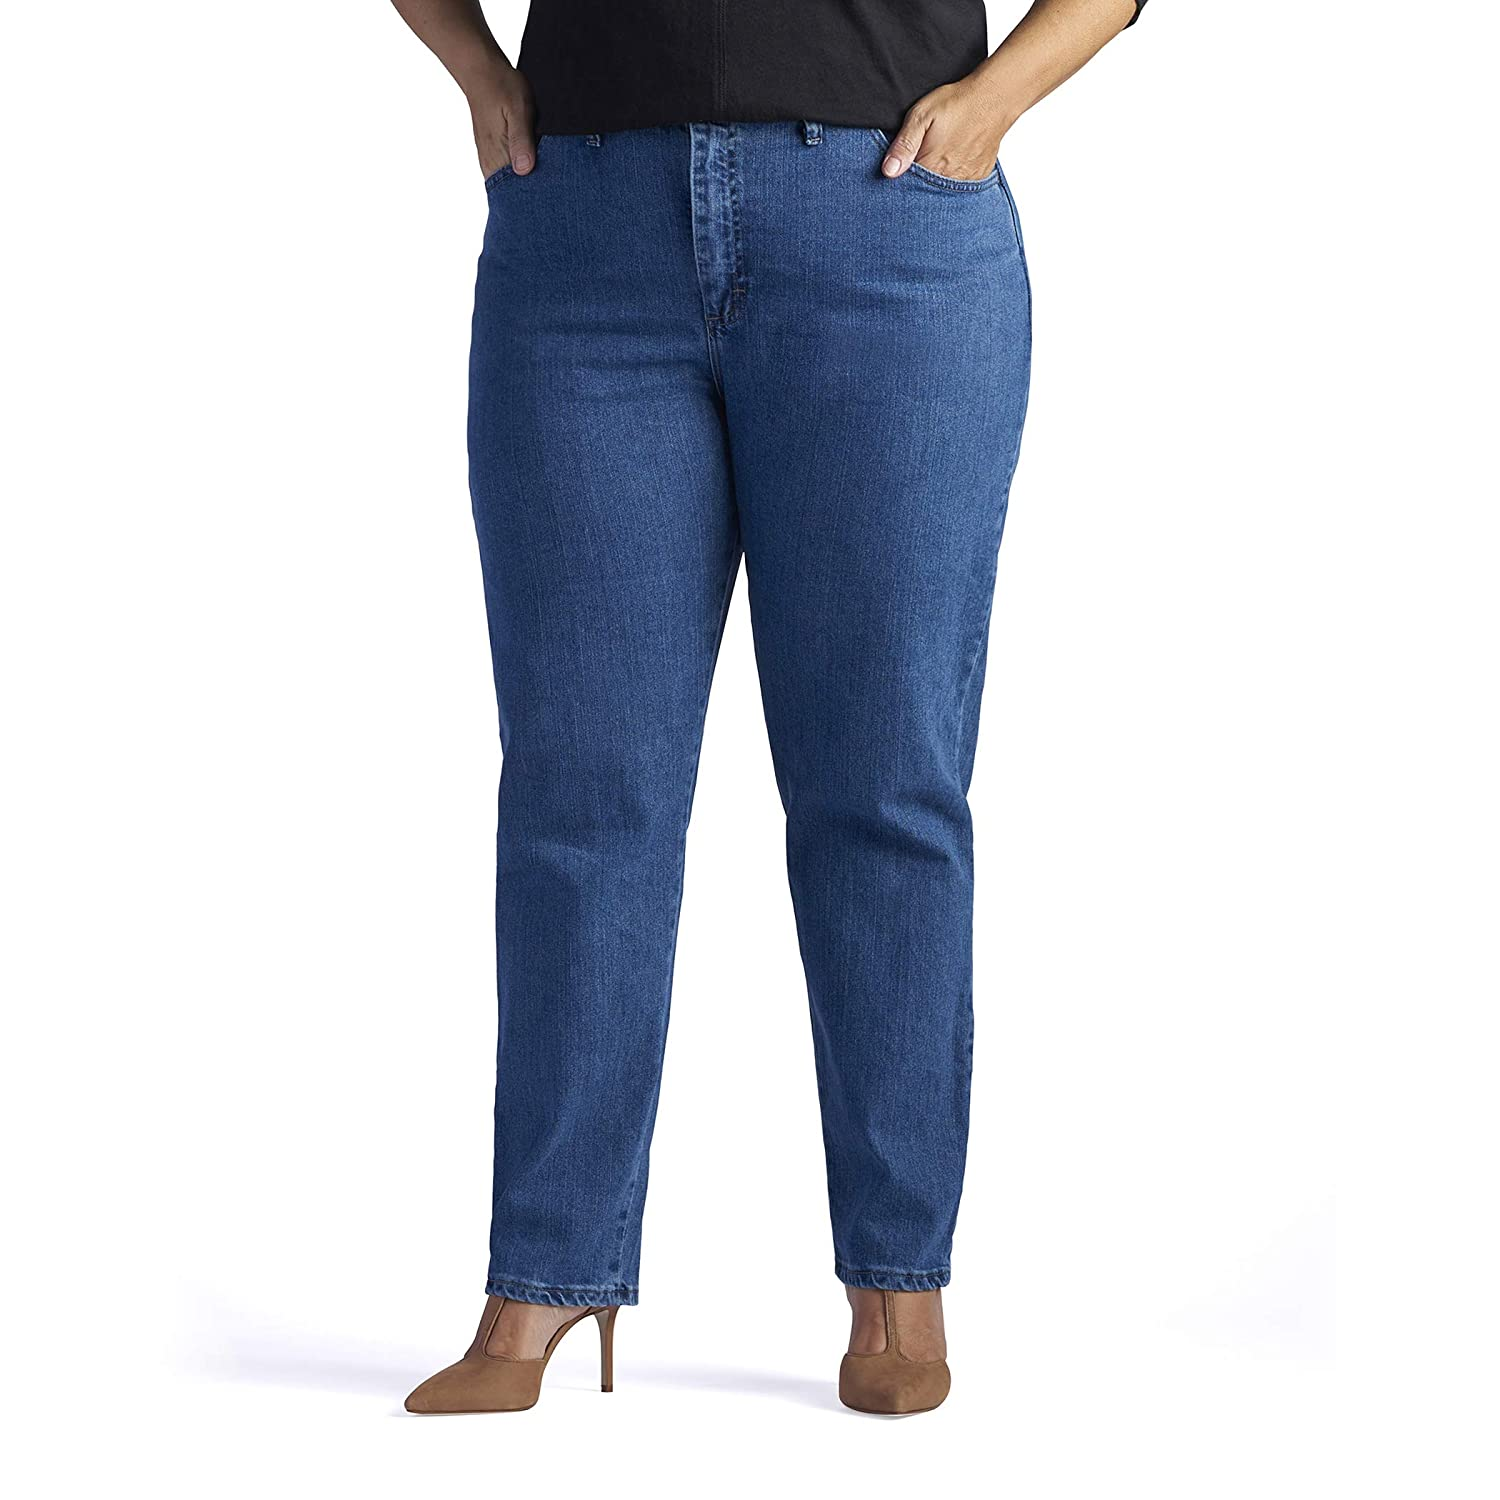 957b1e8a412 Amazon.com  LEE Women s Plus Size Relaxed-fit Elastic-Waist Jean  Clothing